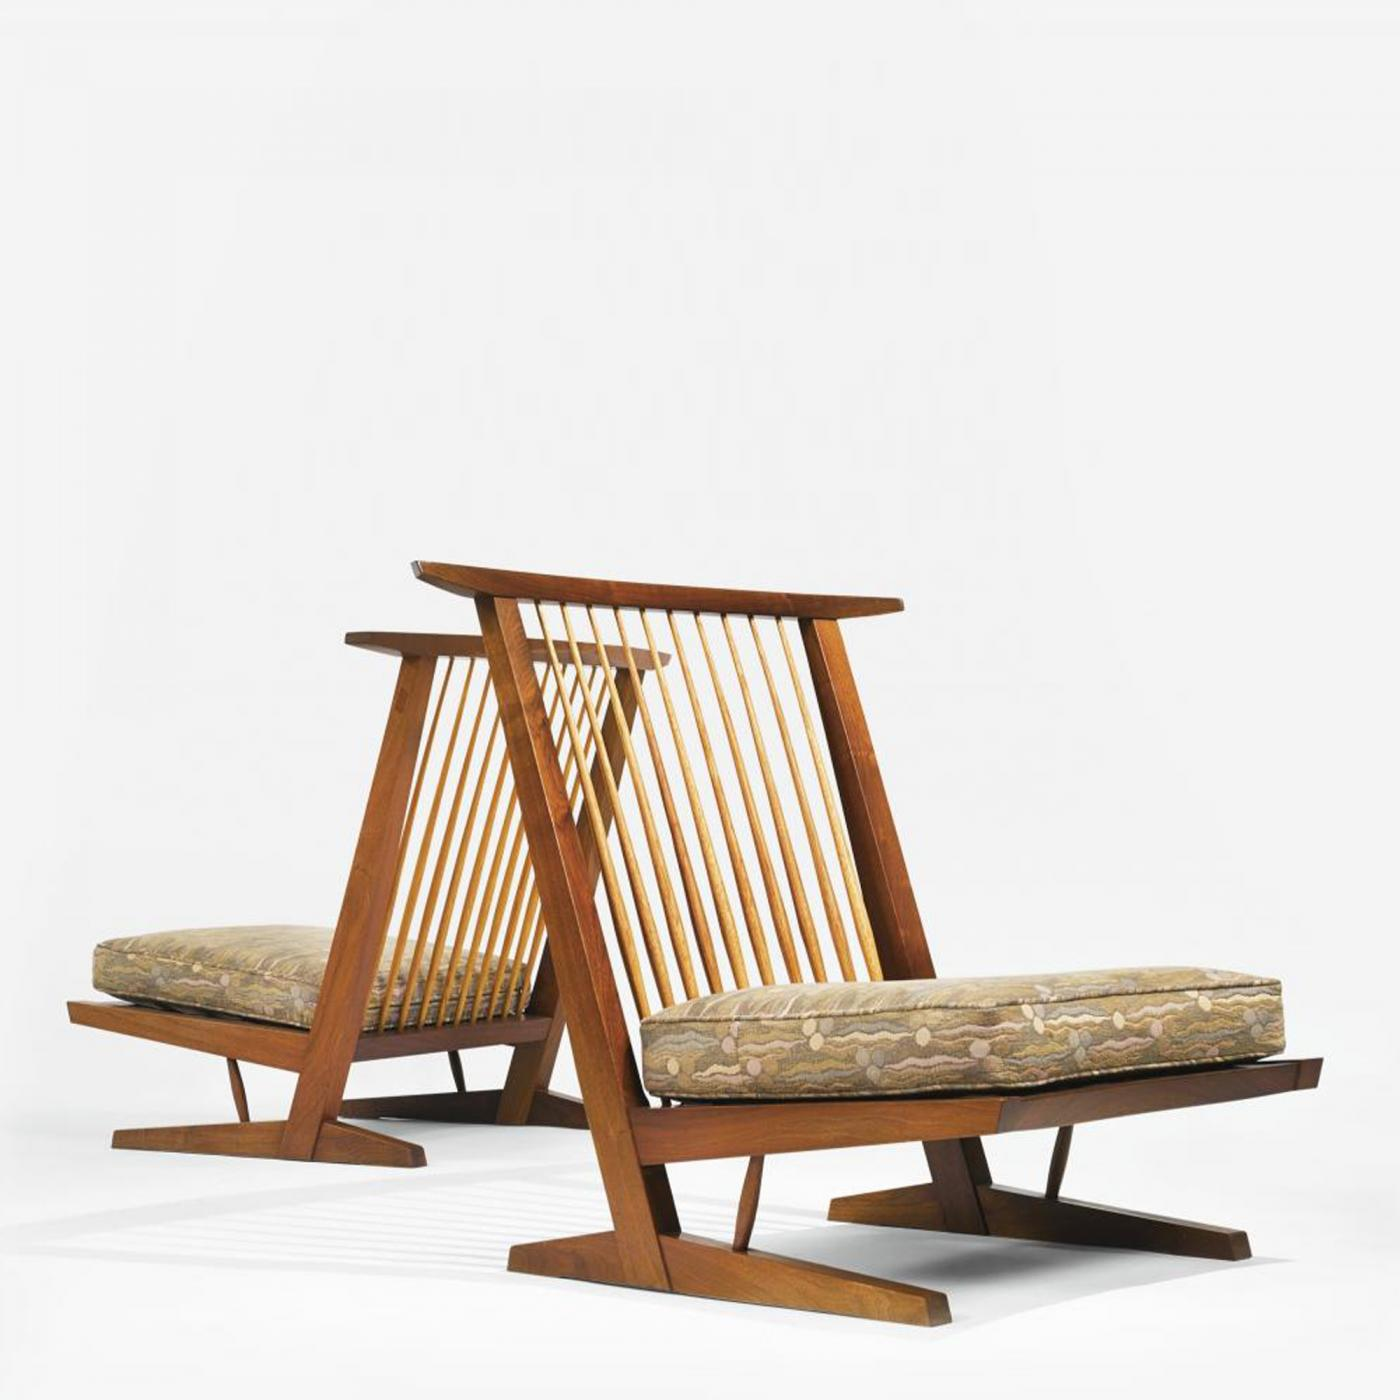 Charmant Listings / Furniture / Seating / Lounge Chairs · George Nakashima ...